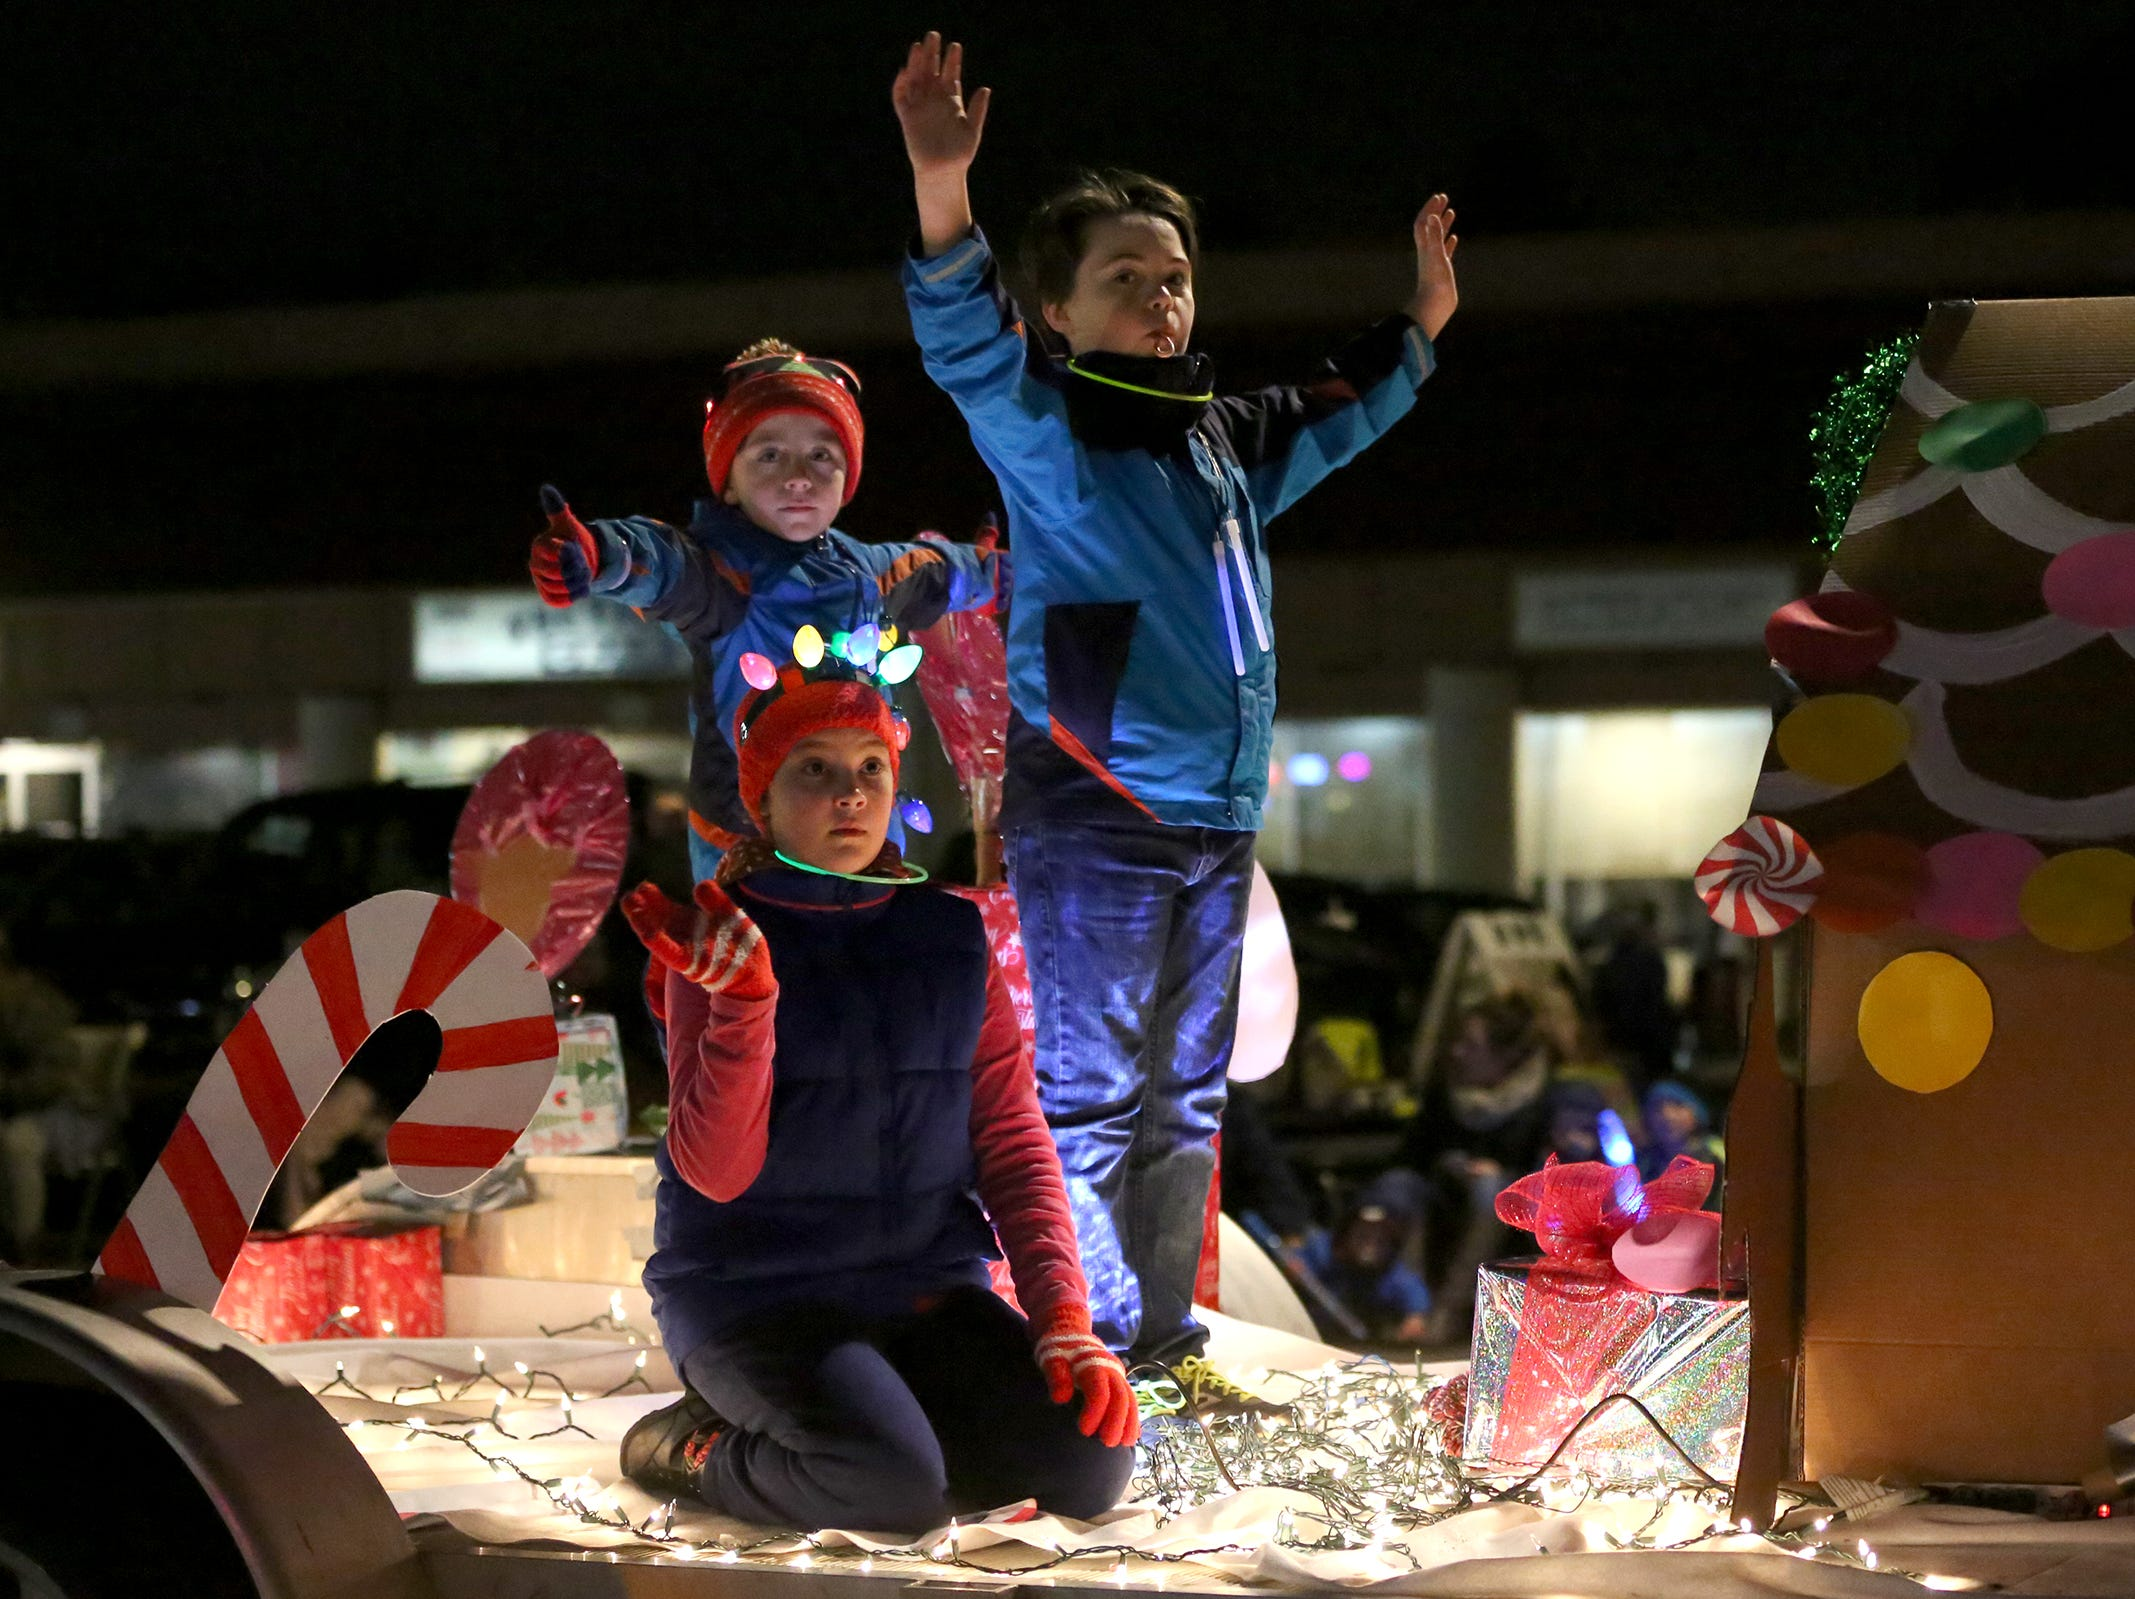 Children on a Candy Land themed float wave during the Keizer Holiday Lights Parade in Keizer on Saturday, Dec. 8, 2018.